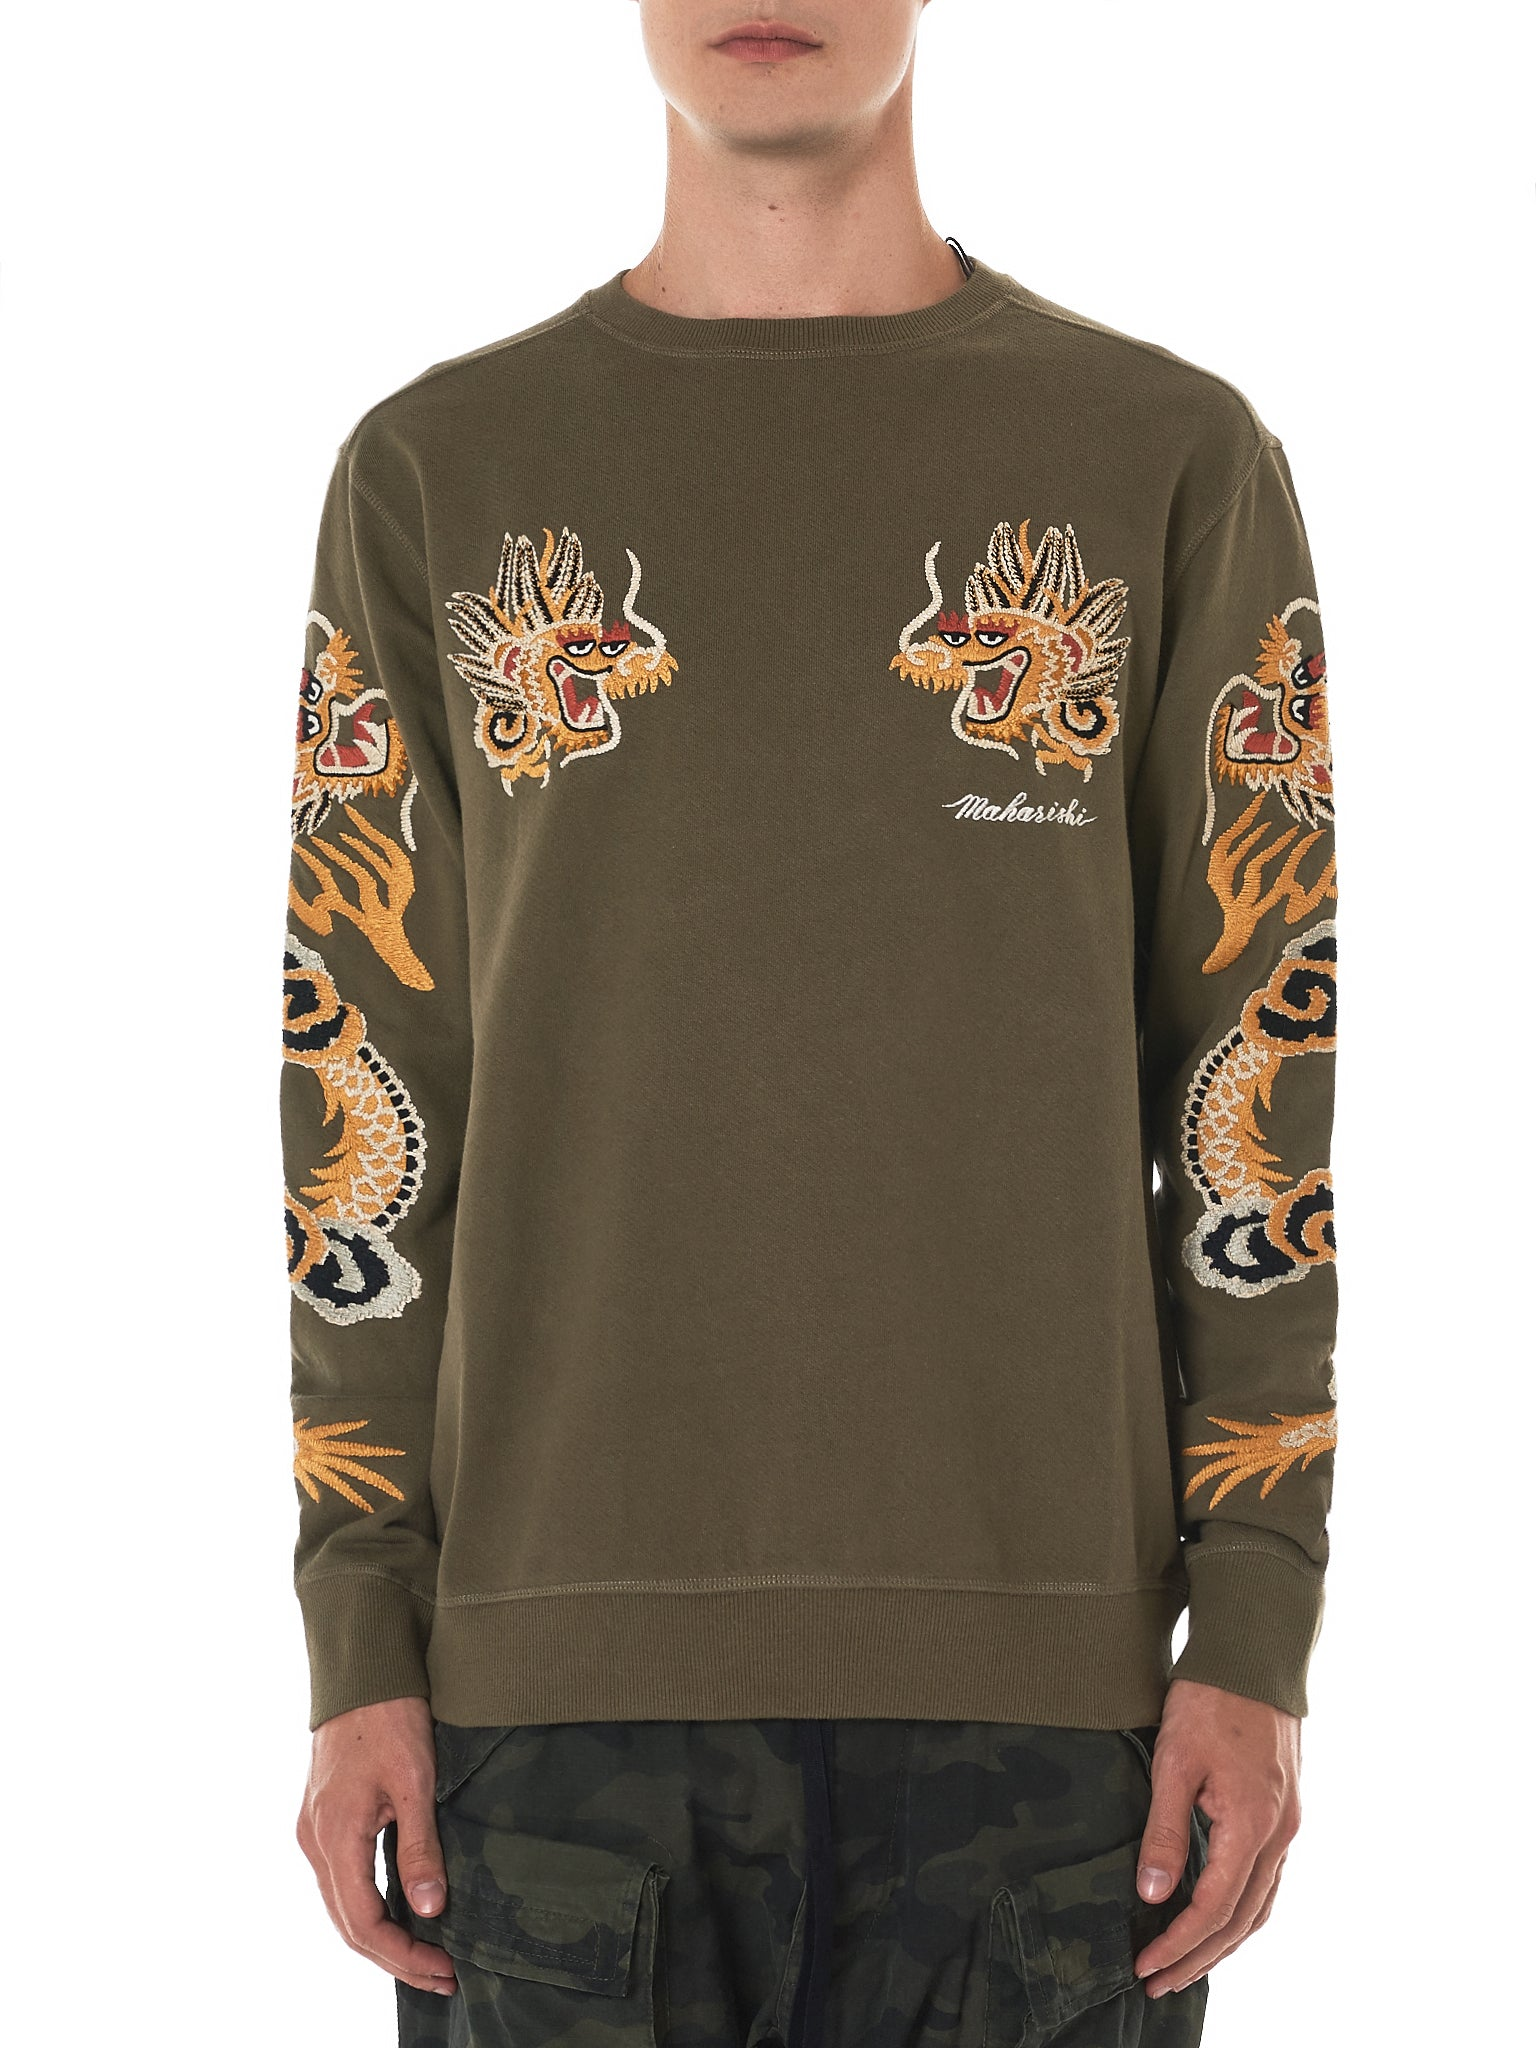 Clearance Store Fast Delivery Online Dragon Arm Embroidered Sweatshirt - Black maharishi Cheap Real Eastbay 1bqlwp8k7